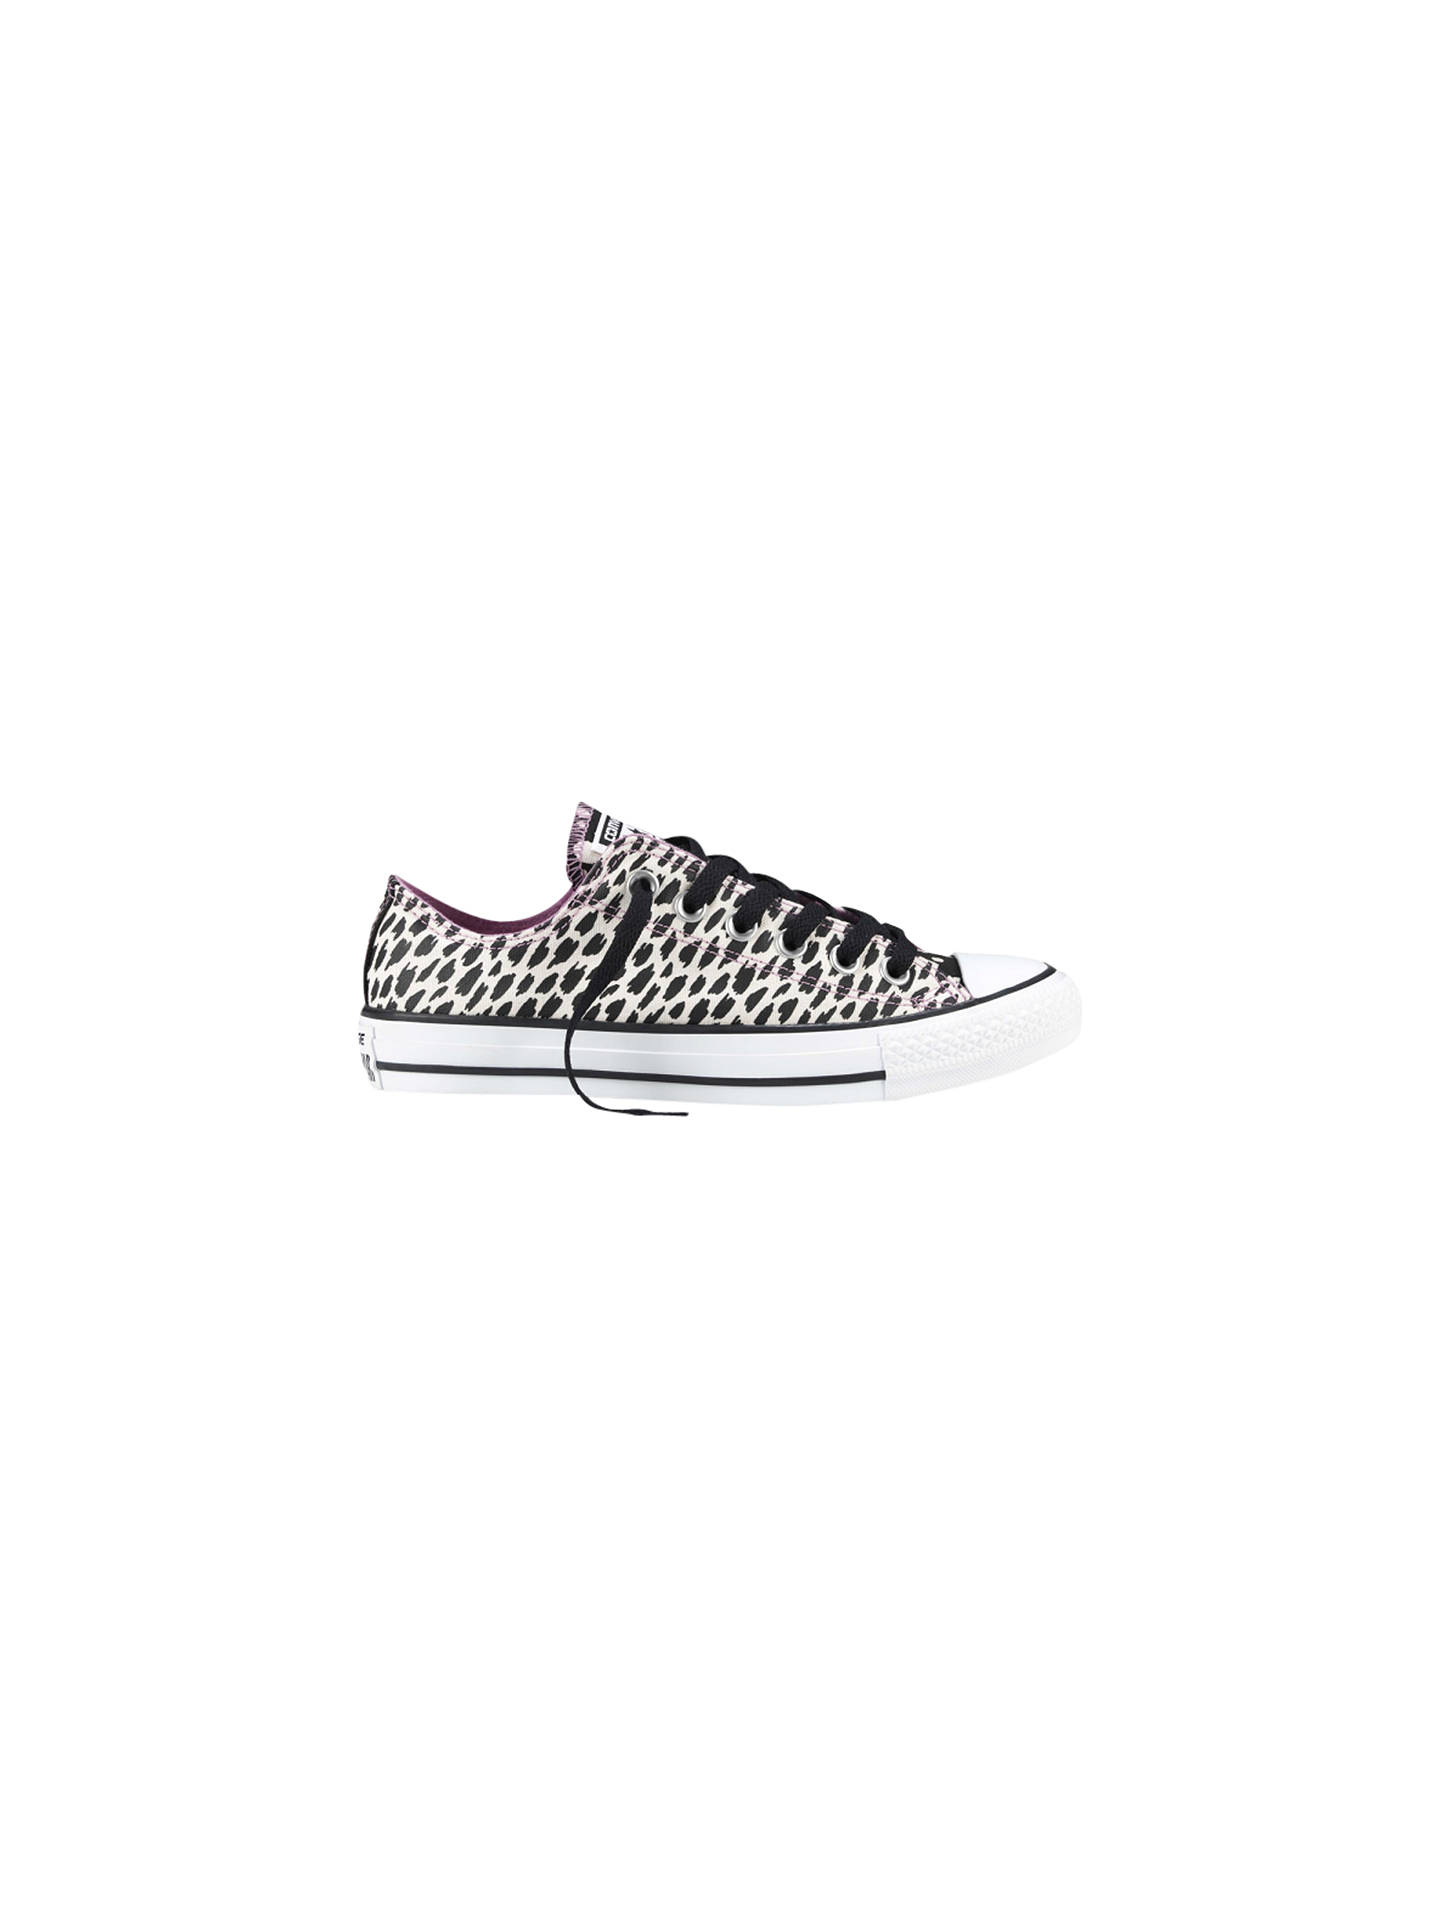 7804d258221059 Converse Chuck Taylor All Star Ox Canvas Animal Print Trainers ...